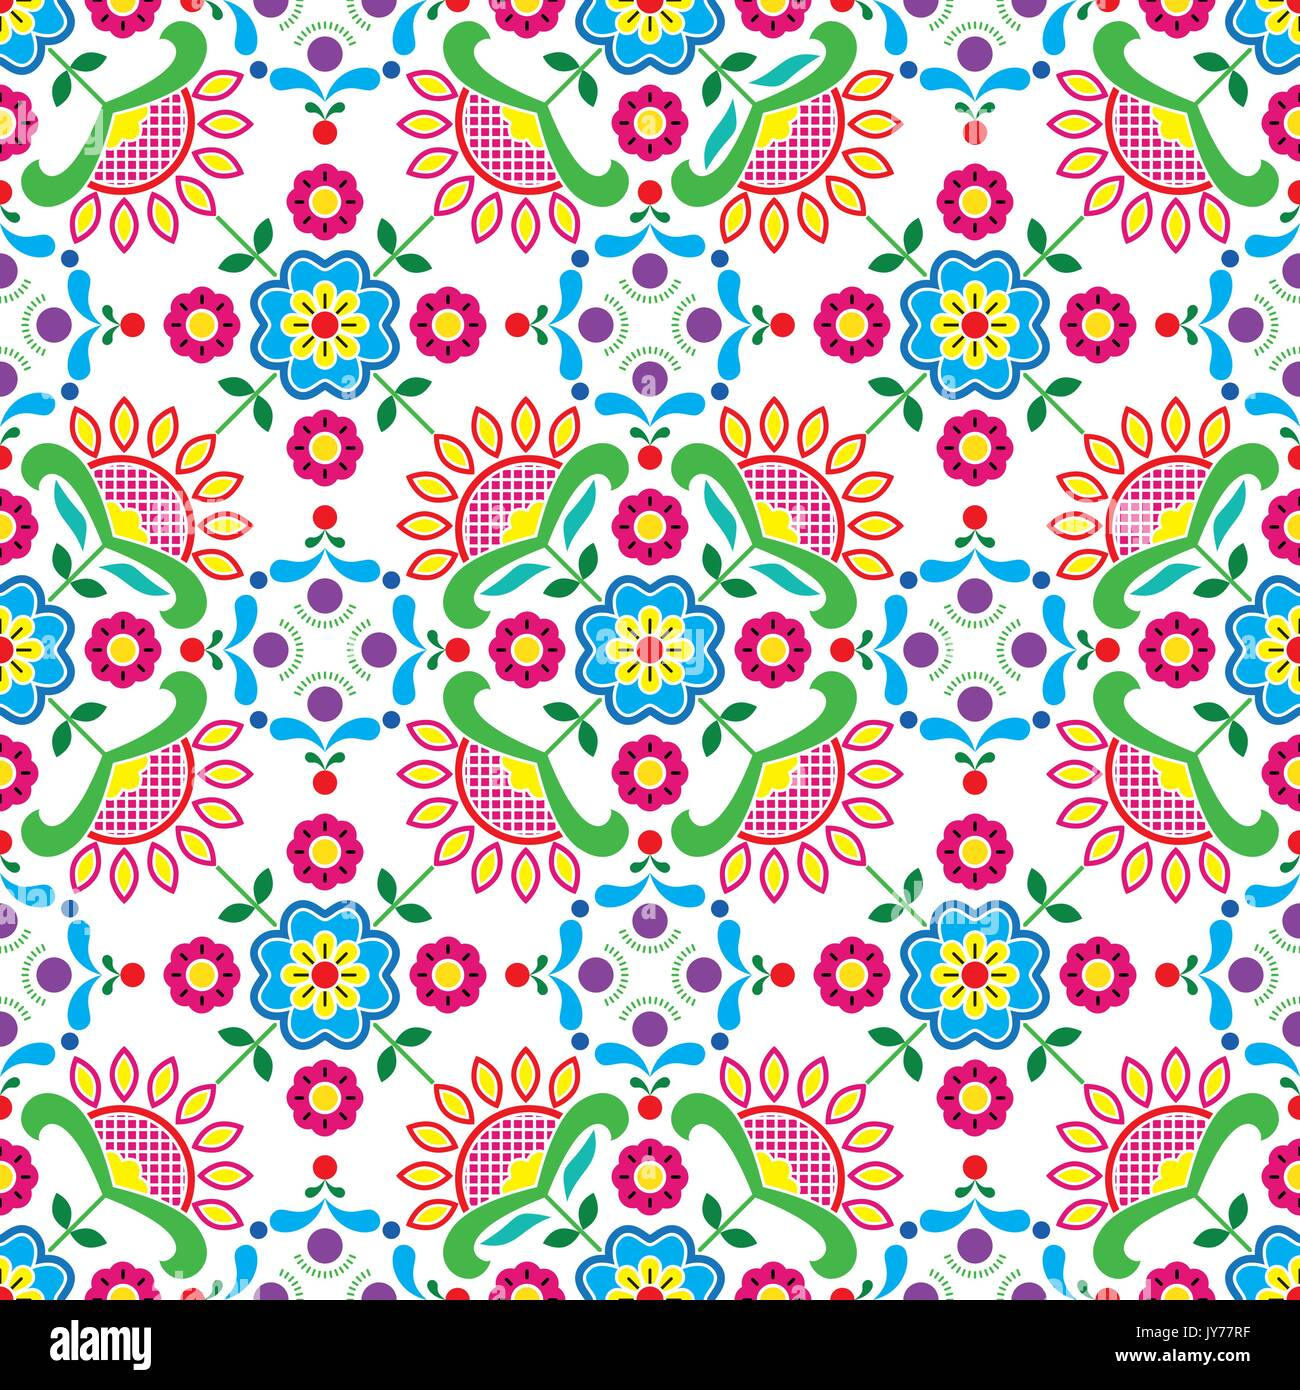 Seamless Norwegian traditional folk art Bunad pattern - Rosemaling style embroidery       Vector colorful background, Stock Vector